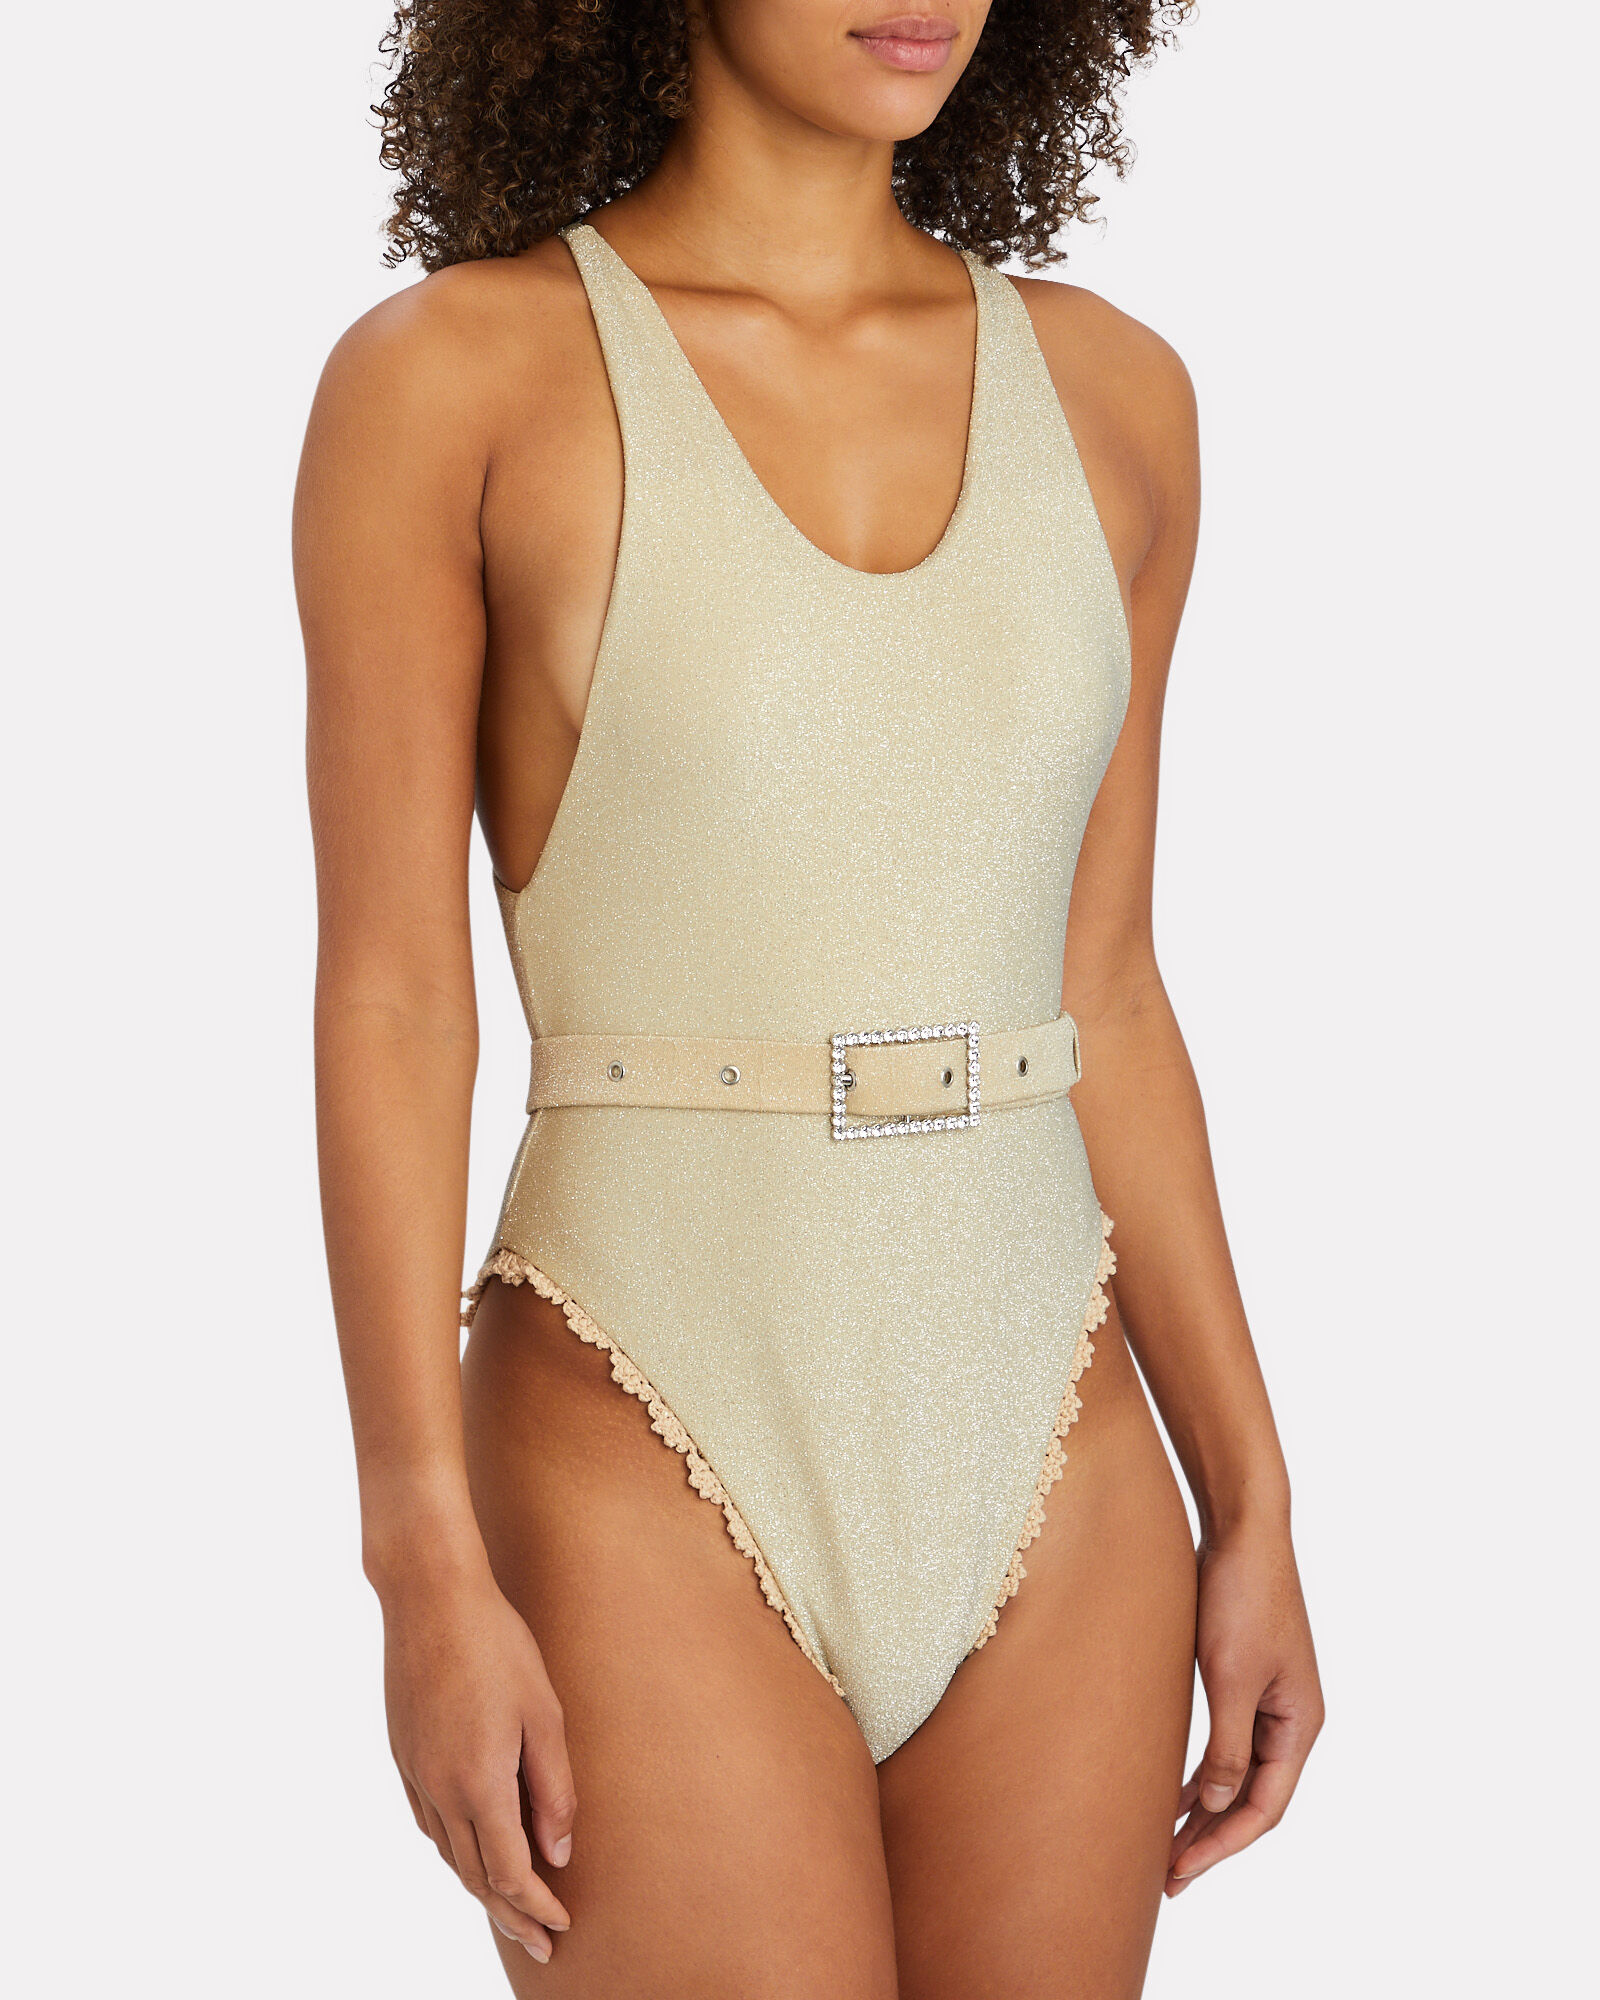 Gia Belted Lurex One-Piece Swimsuit, GOLD, hi-res